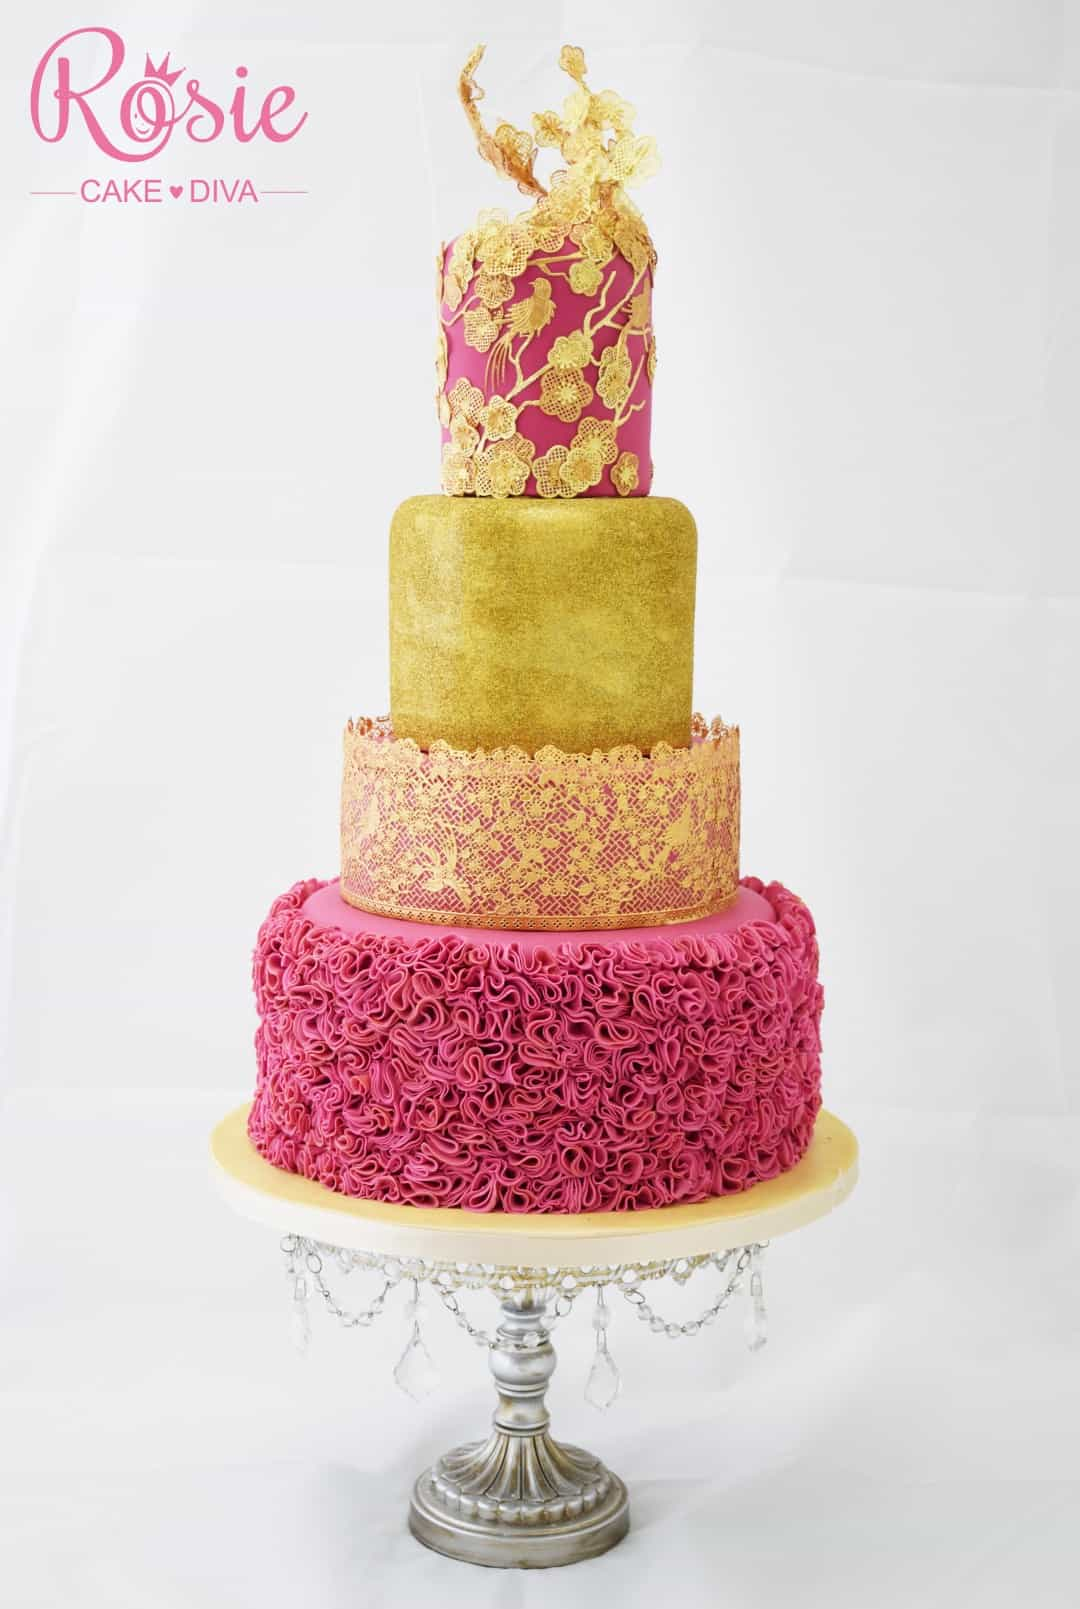 Fondant Ruffles - birthday cake decorating ideas